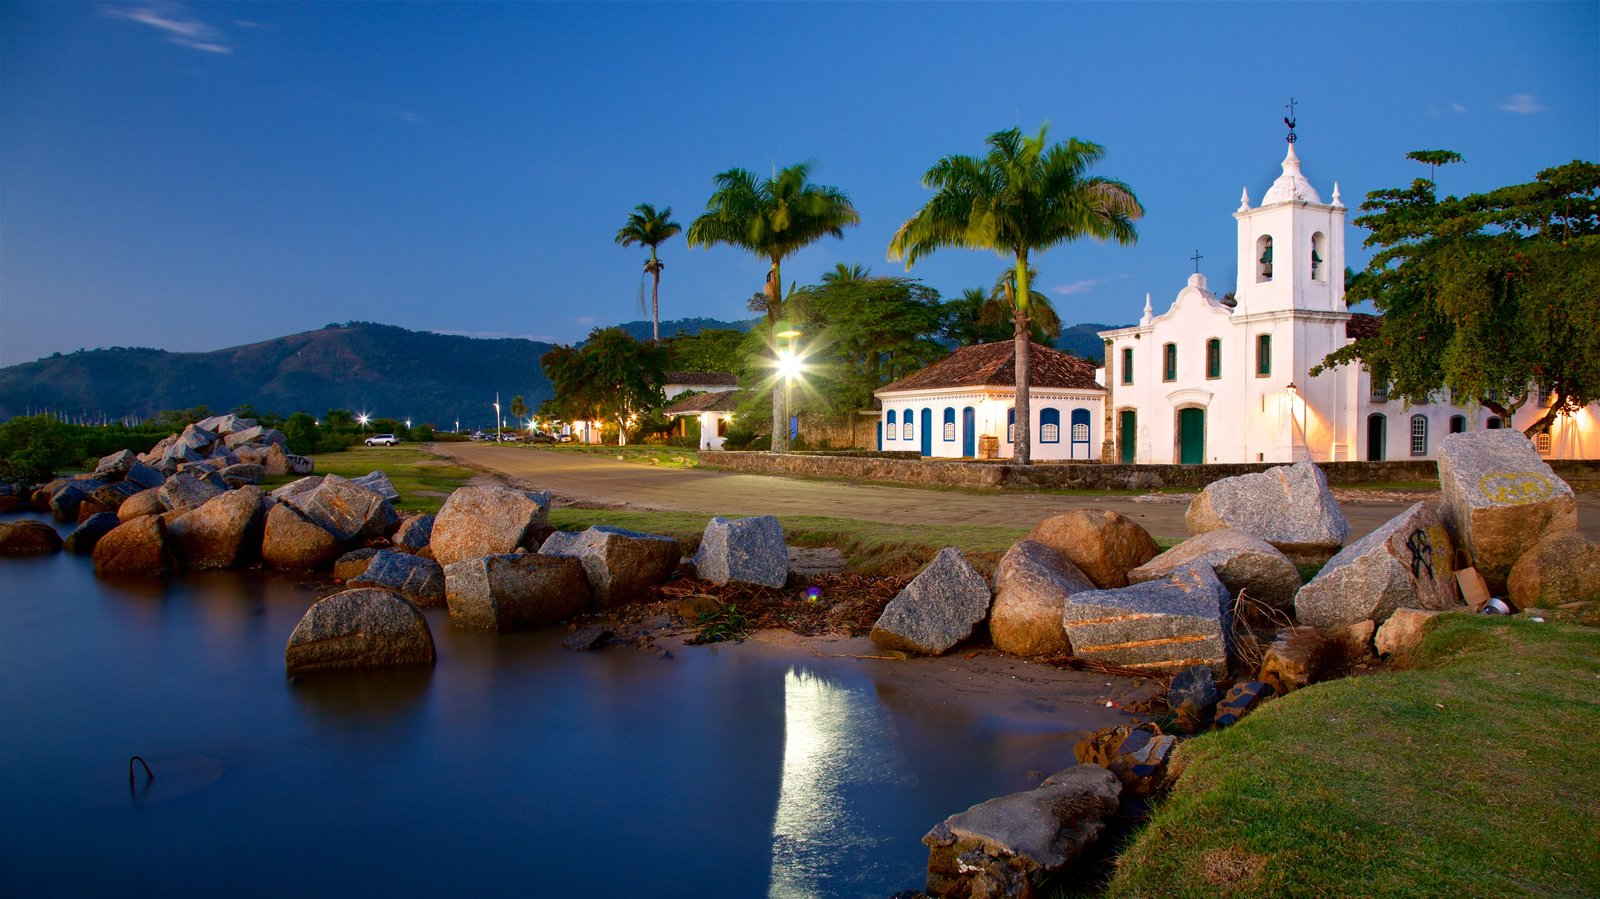 Nossa Senhora das Dores Church showing night scenes, a lake or waterhole and a small town or village